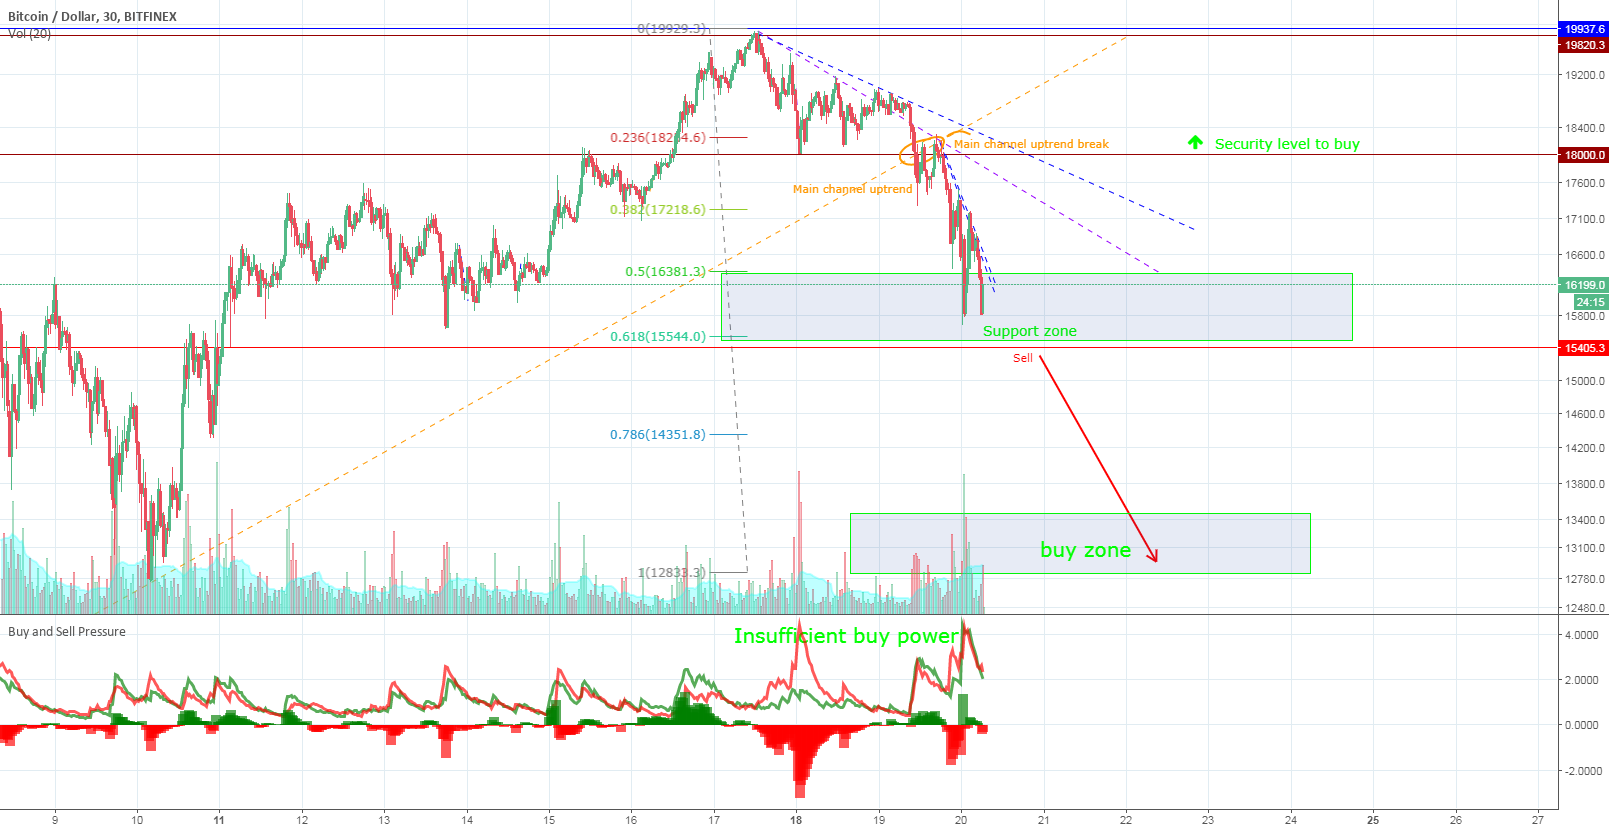 Bitcoin - The fall is not over, second target to buy